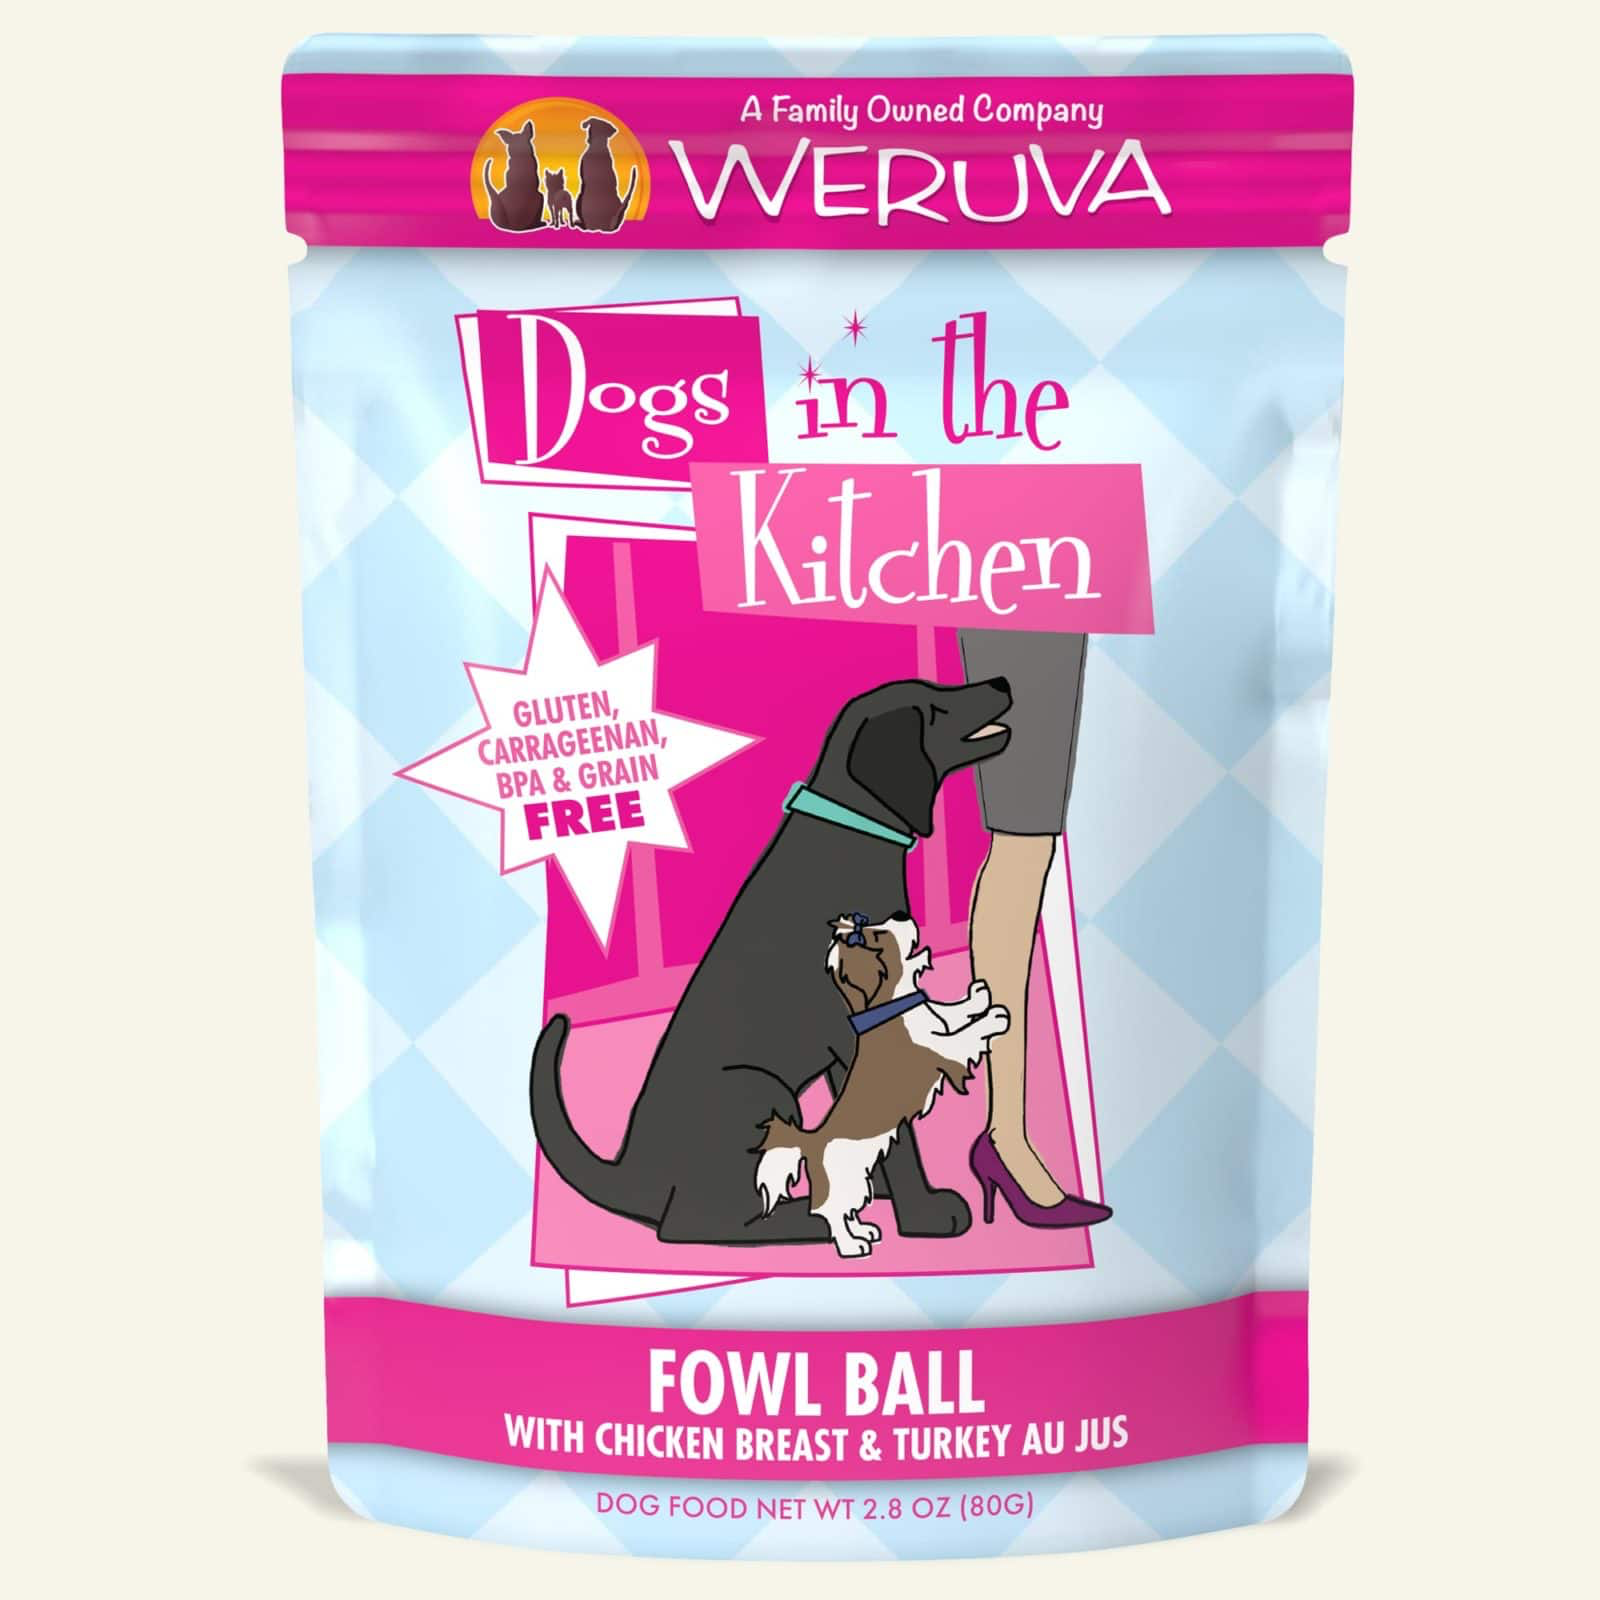 Weruva Dogs in the Kitchen Fowl Ball Chicken Breast and Turkey Au Jus